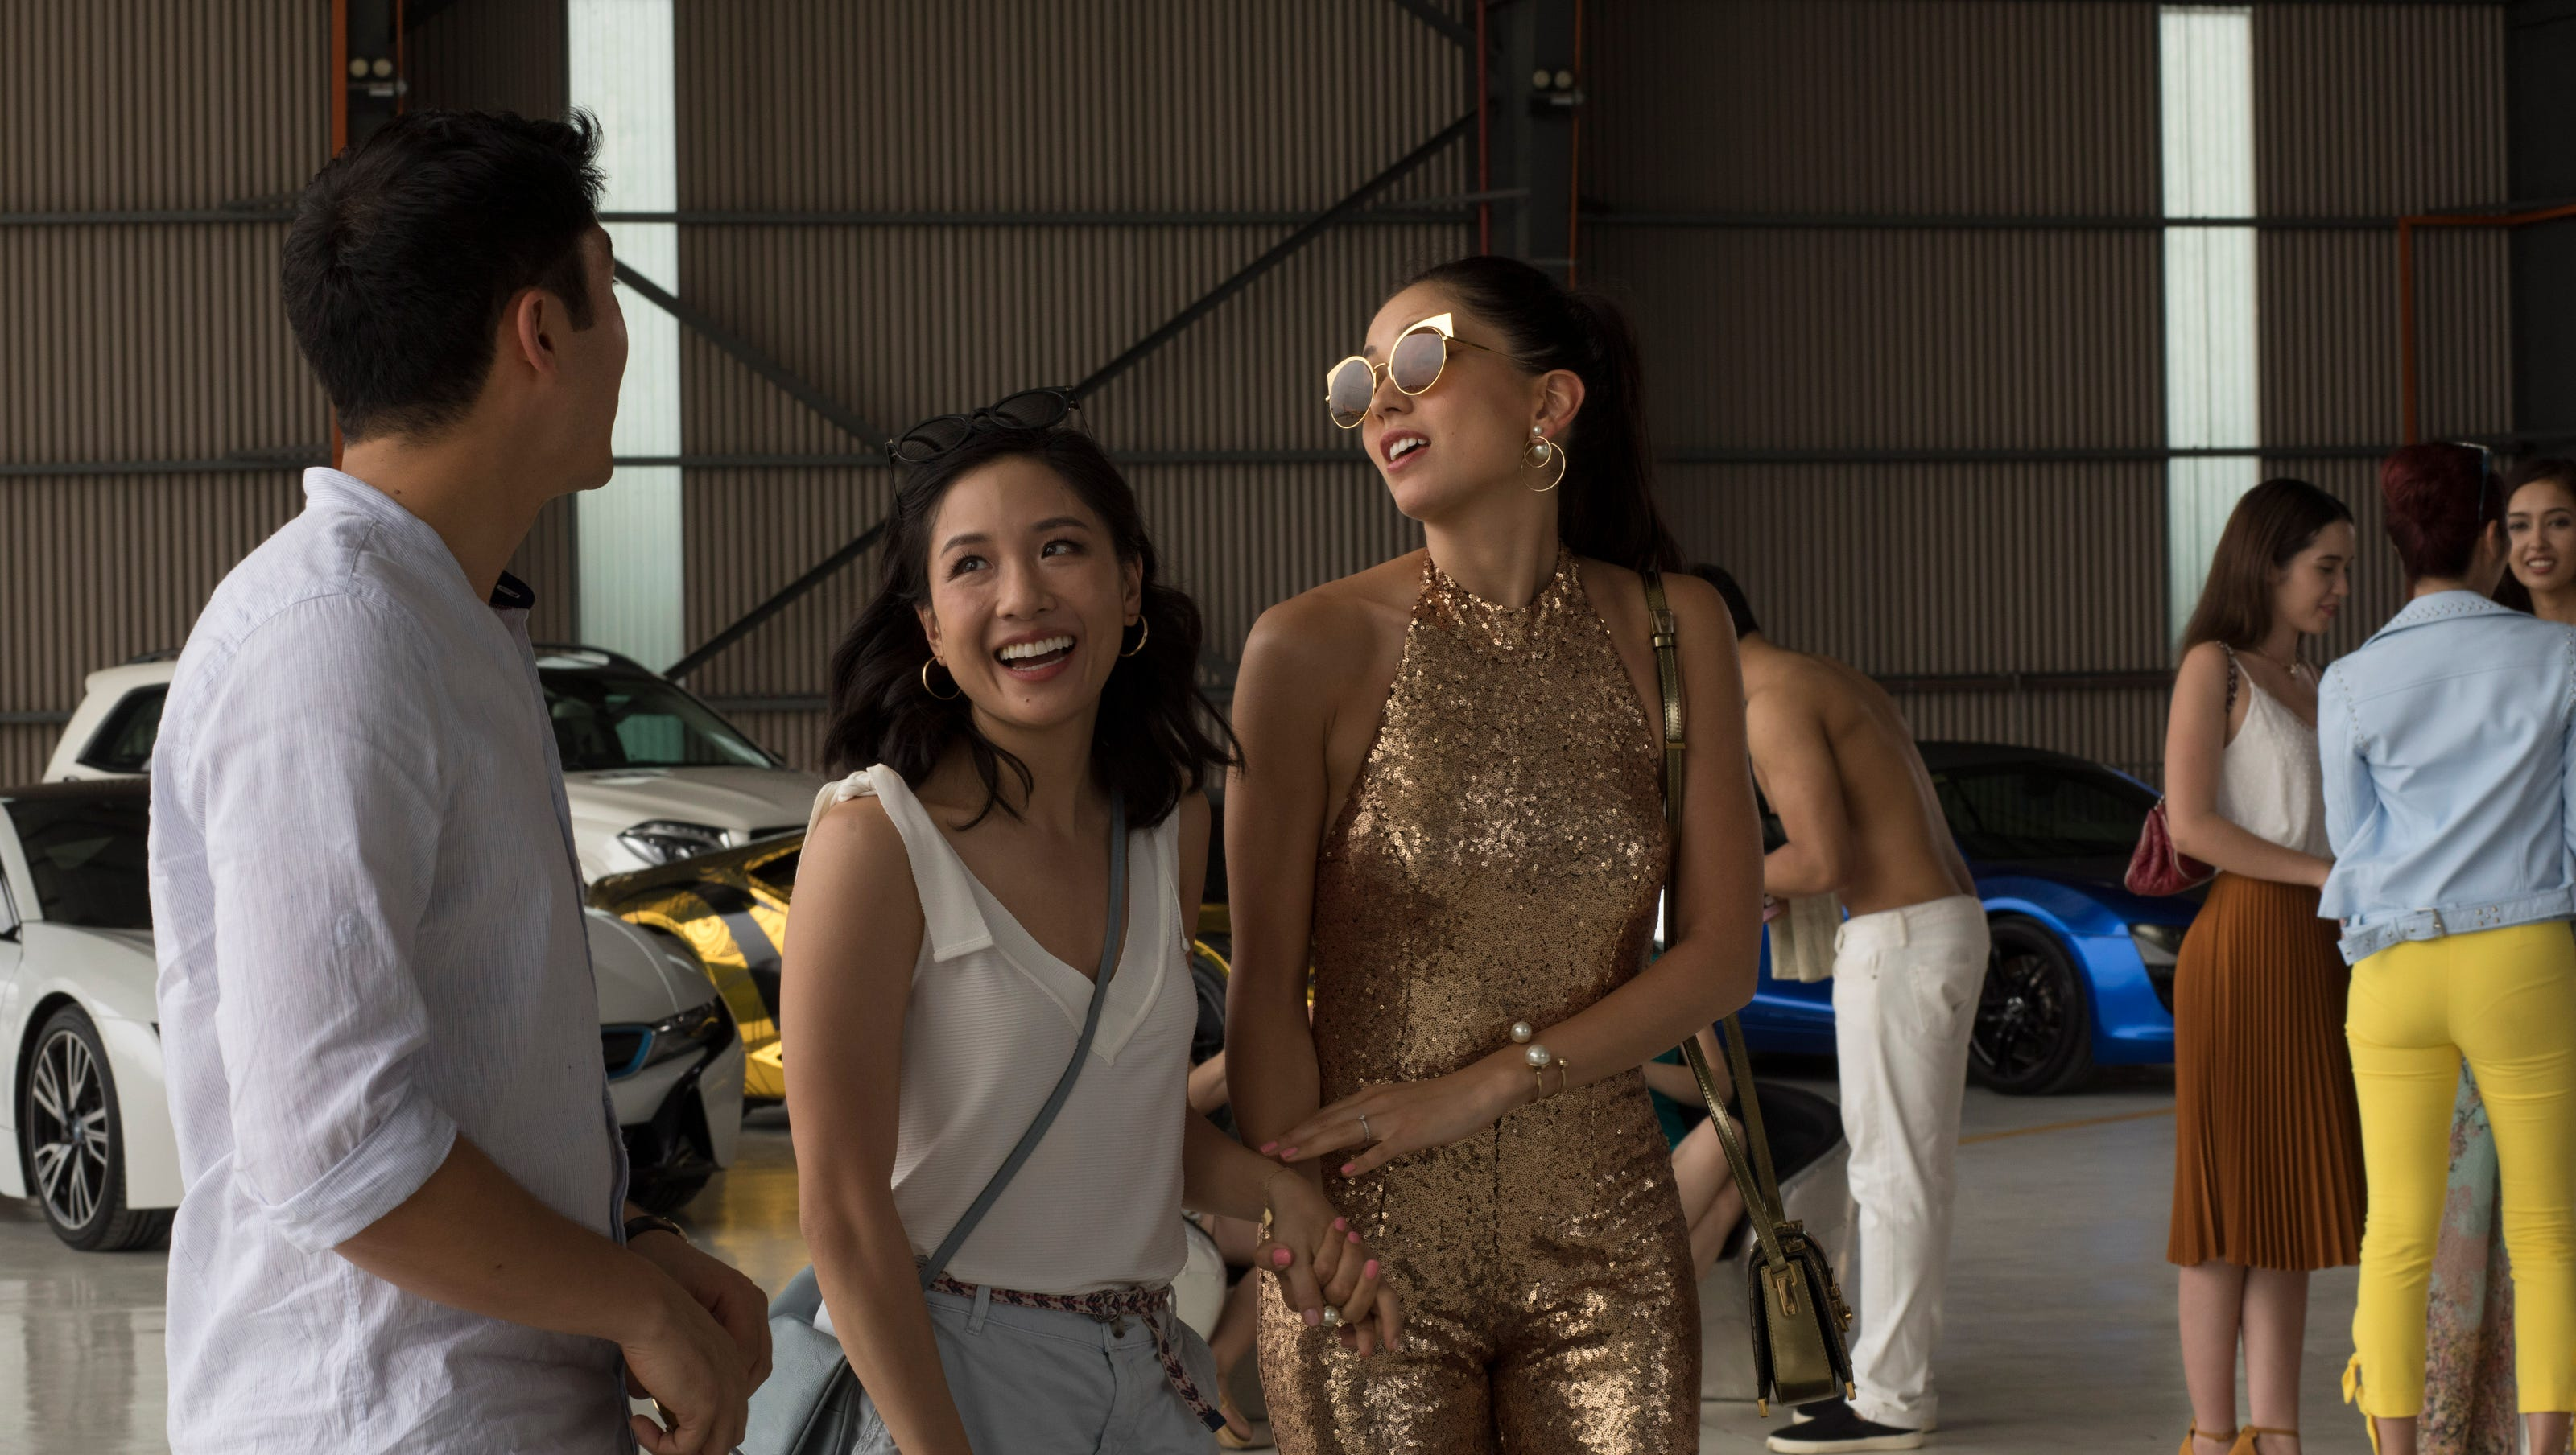 crazy rich asians': everything we know about the movie